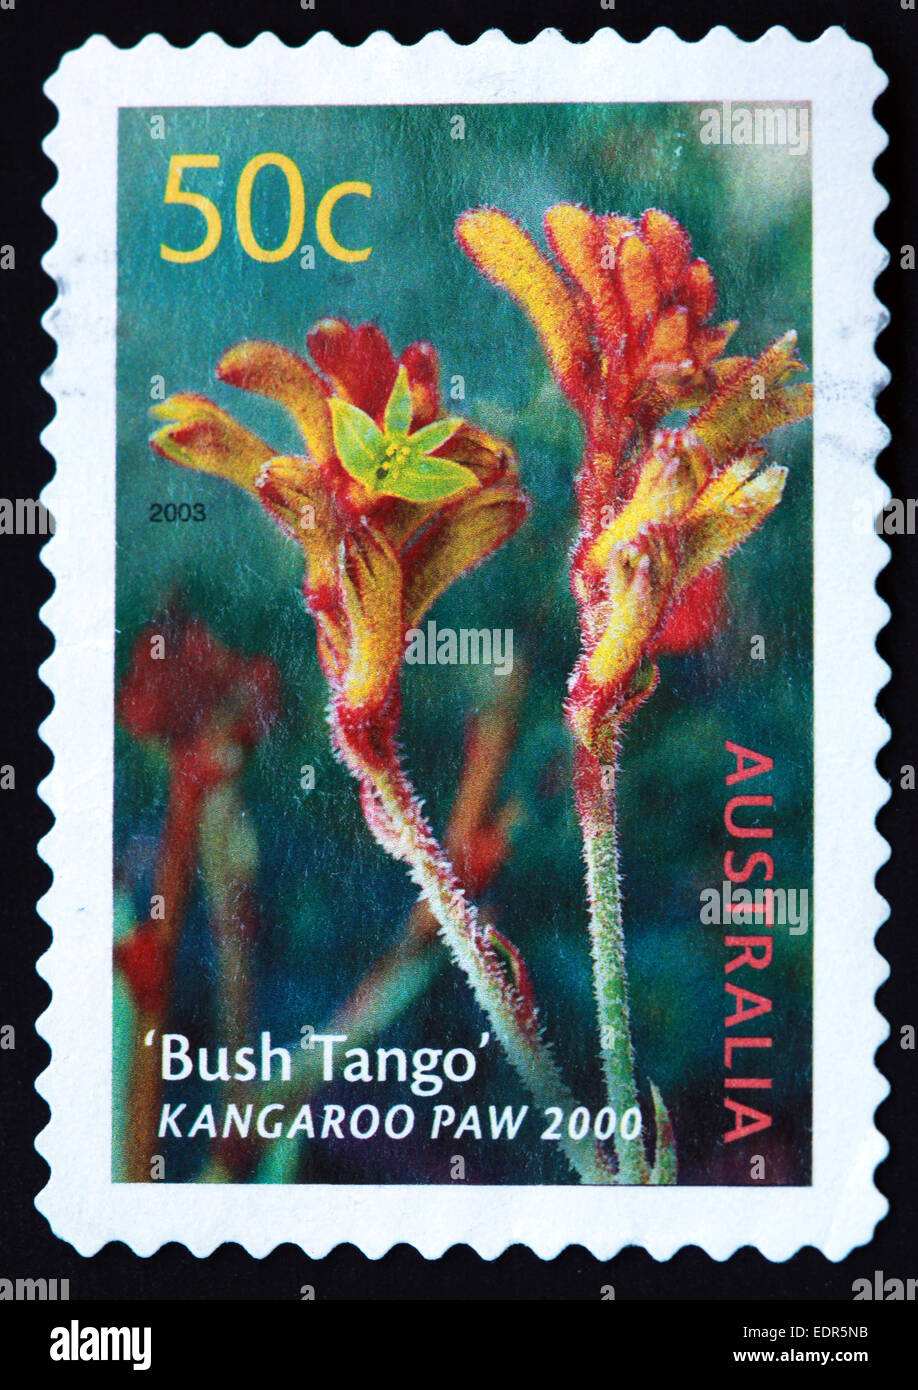 Flower,plant,stamp,Kangaroo Paw,Bush Tango,Used and Postmarked,Used,and,postmarked,perforated,Australia,stamp,Used,and,postmarked,Australia,Austrailian,Stamp,post,posting,mail,hobby,perforation,mark,postage,stamp,print,stamp,cancelled,stamp,payment,correspondence,postman,collectio,Gotonysmith,flowers,hobby,perforation,mark,postage,stamp,print,stamp,cancelled,canceled,stamp,payment,correspondence,postman,collection,collector,philately,philatelist,letter,price,history,retro,Australian,Vintage,delivery,date,relationship,communication,Oz,Australia,DownUnder,classic rare unique Austrailian financial,investment,invest,value,British,empire,nation,canceled,printed on black background,close-up,closeup,close,up,sent,send,philately,mailing,shipping,postoffice,office,isolated,circa,special,colour,color,postmarked,marked,airmail,aged,antique,retro,cutting,historic,old,stamps,collection,stamp collection,album,Timbre,Sello,Stempel,Selo,Down Under,Black background